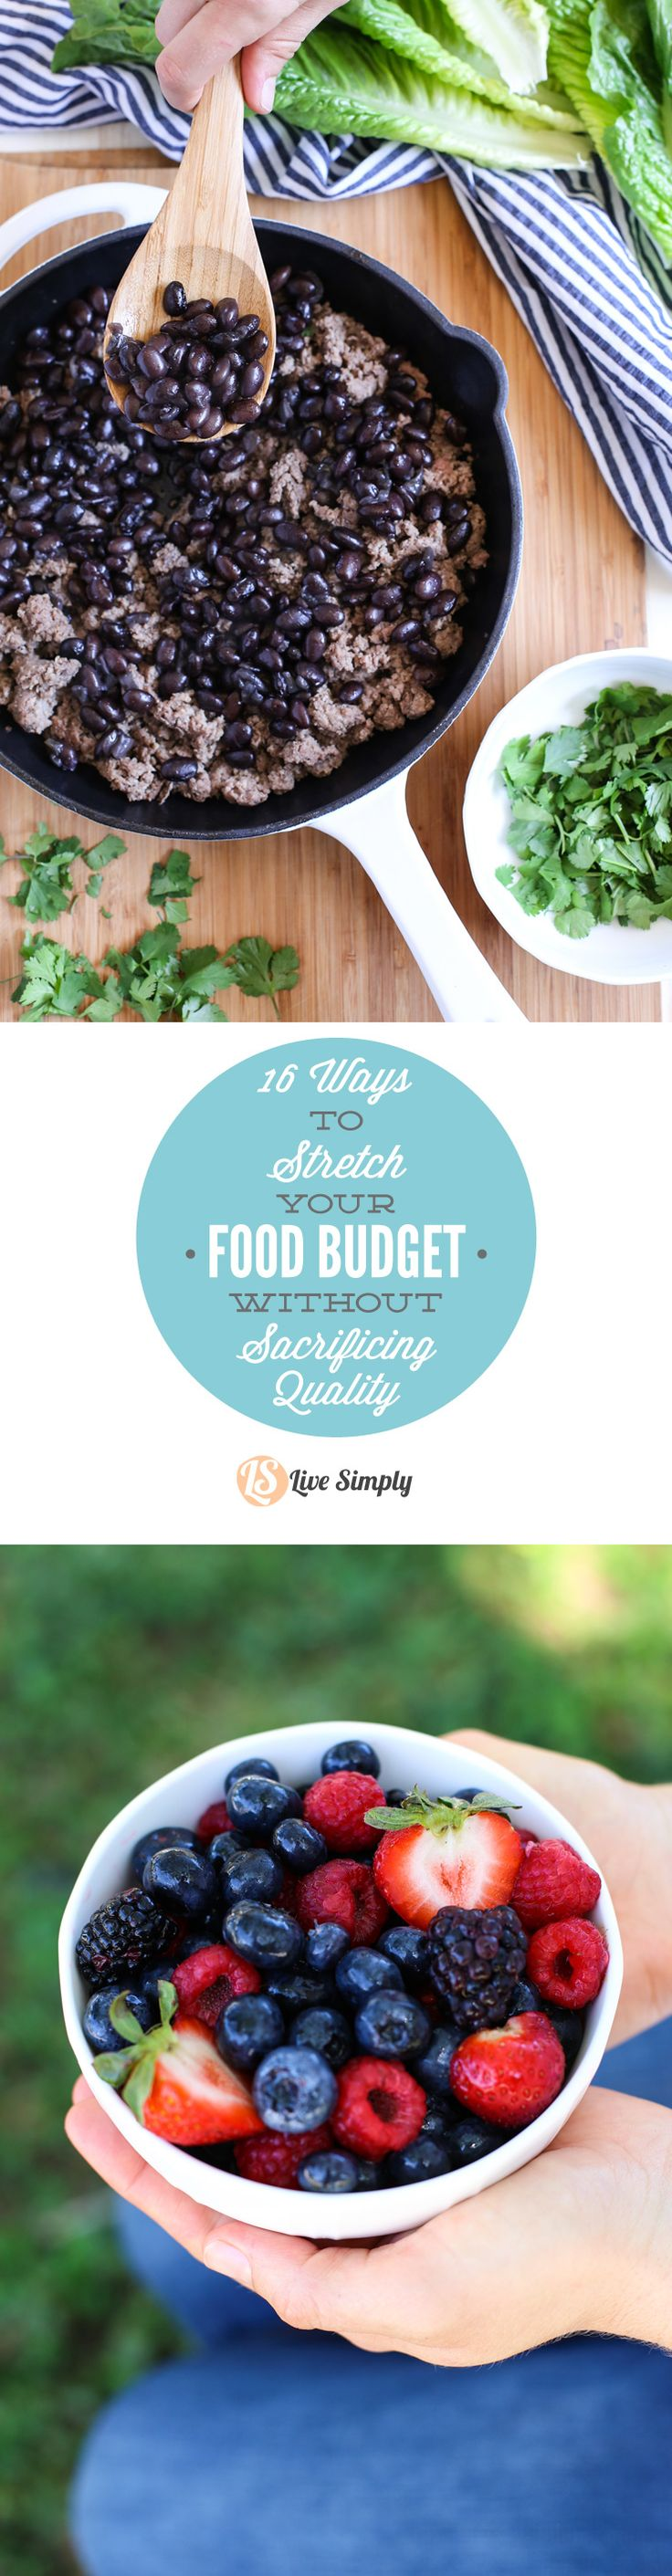 16 practical ways to stretch your real food budget without sacrificing quality! Simple family-friendly tips to reduce your food costs and eat healthy. http://livesimply.me/2015/05/12/16-ways-to-stretch-your-food-budget-without-sacrificing-quality/